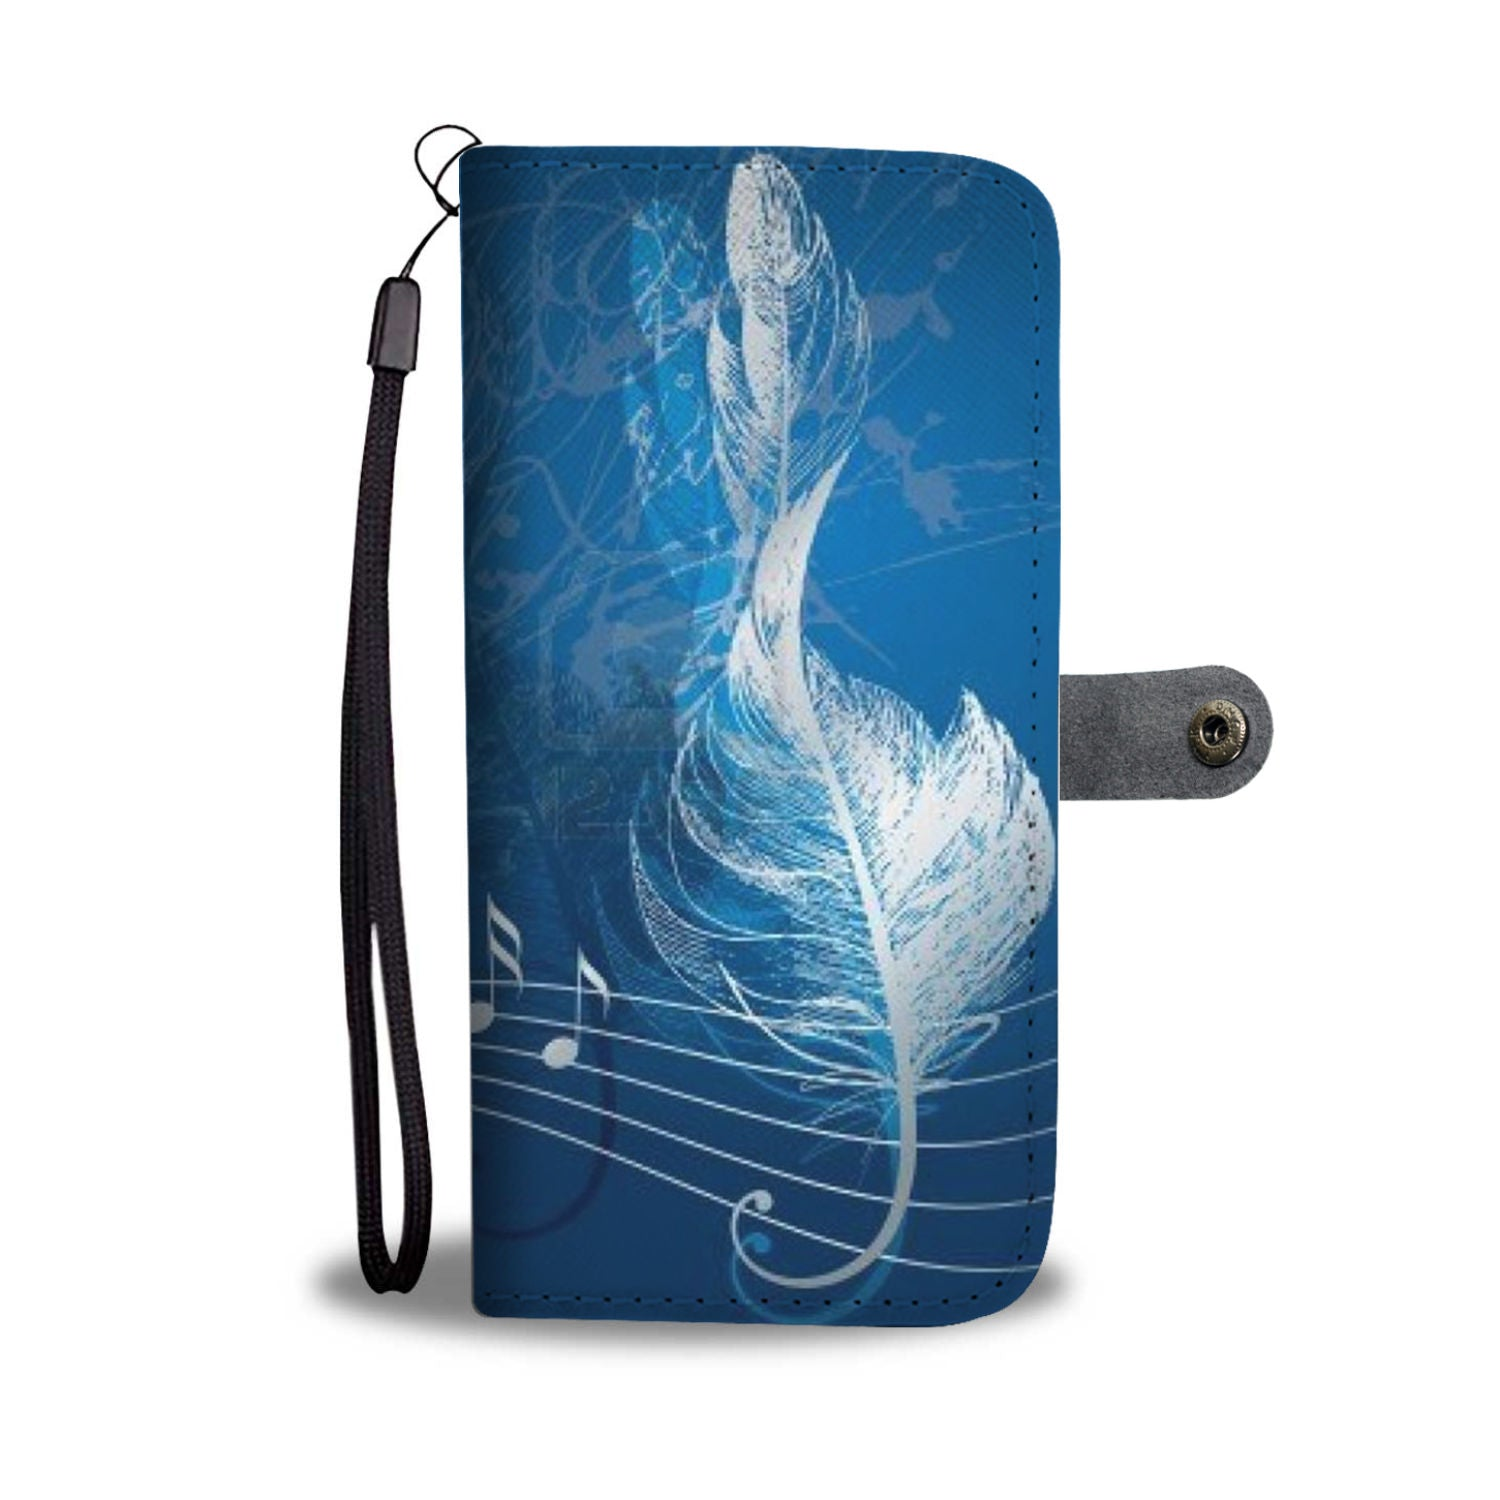 VIRA Feather Treble Leather- like Wallet Case For Awesome Teachers